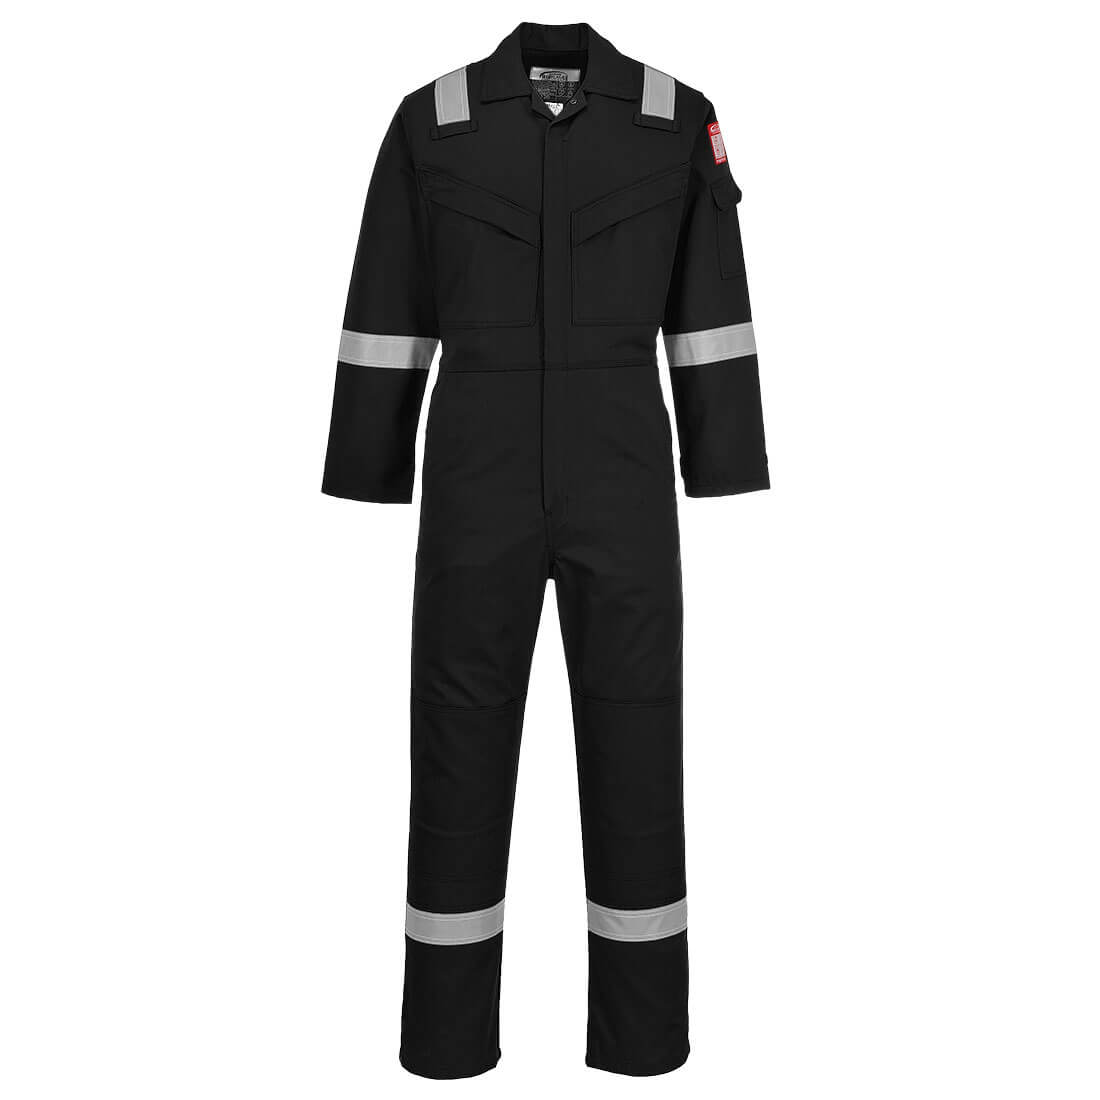 Image of Biz Flame Aberdeen Flame Resistant Antistatic Coverall Black 2XL 32""